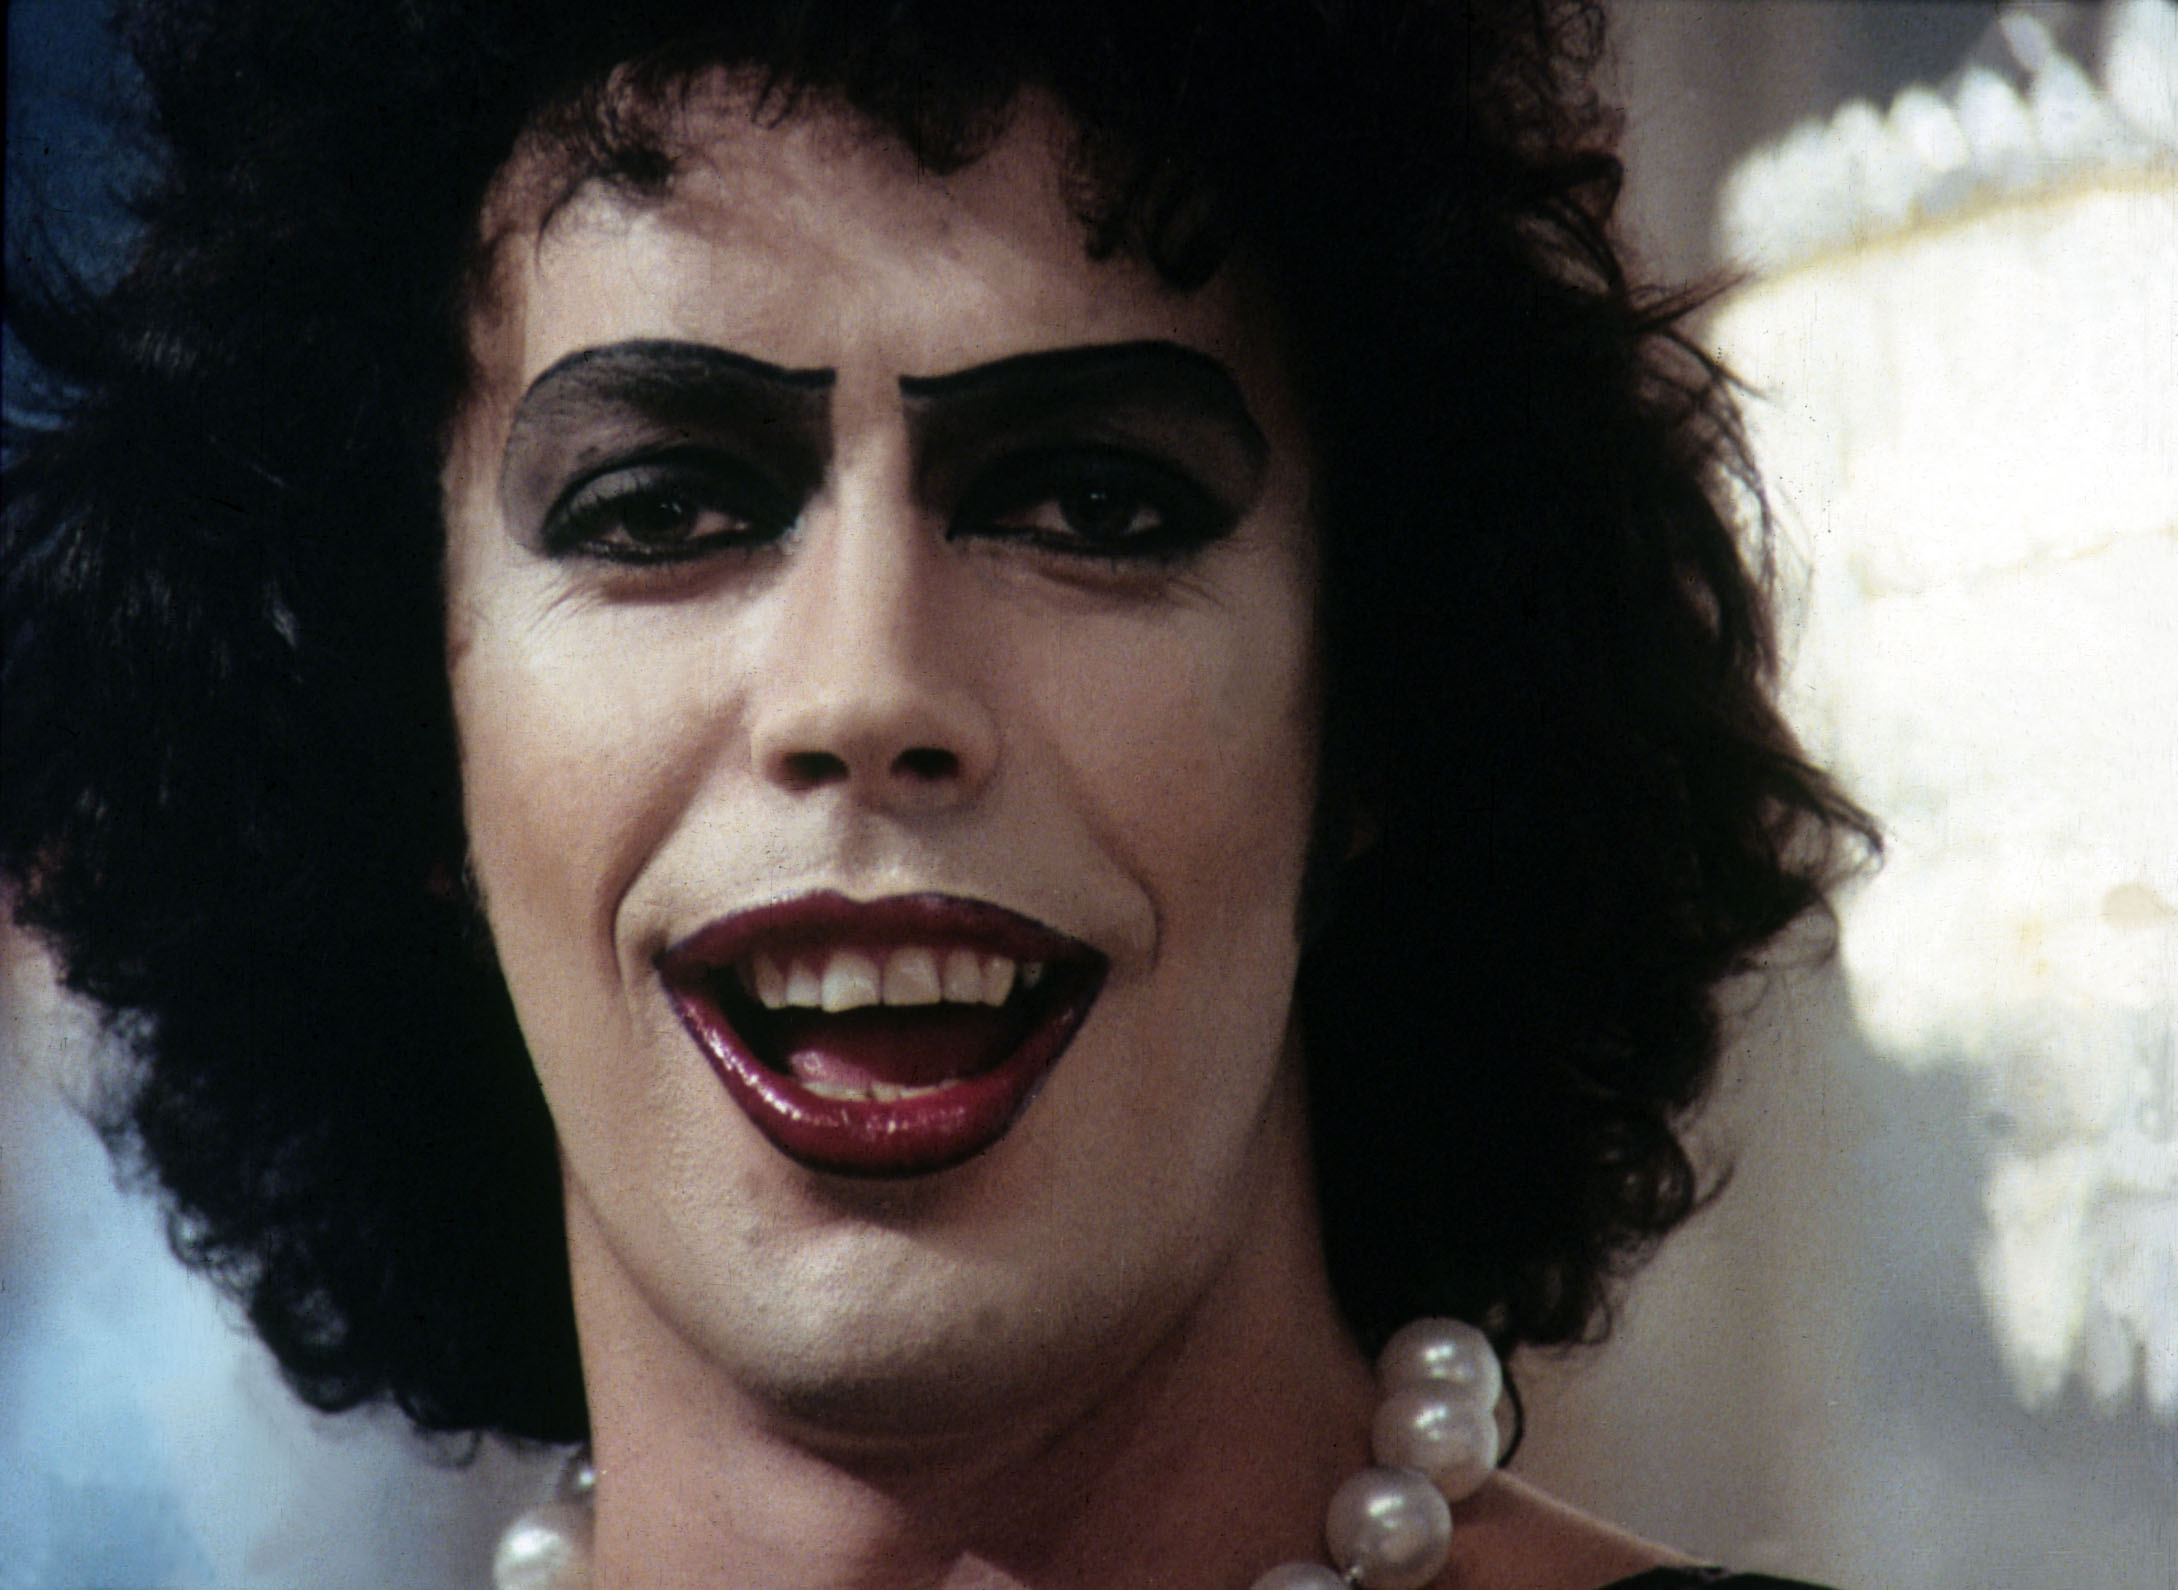 THE ROCKY HORROR PICTURE SHOW  [US / UK 1975]  TIM CURRY THE ROCKY HORROR PICTURE SHOW  [US / BR 1975]  TIM CURRY     Date: 1